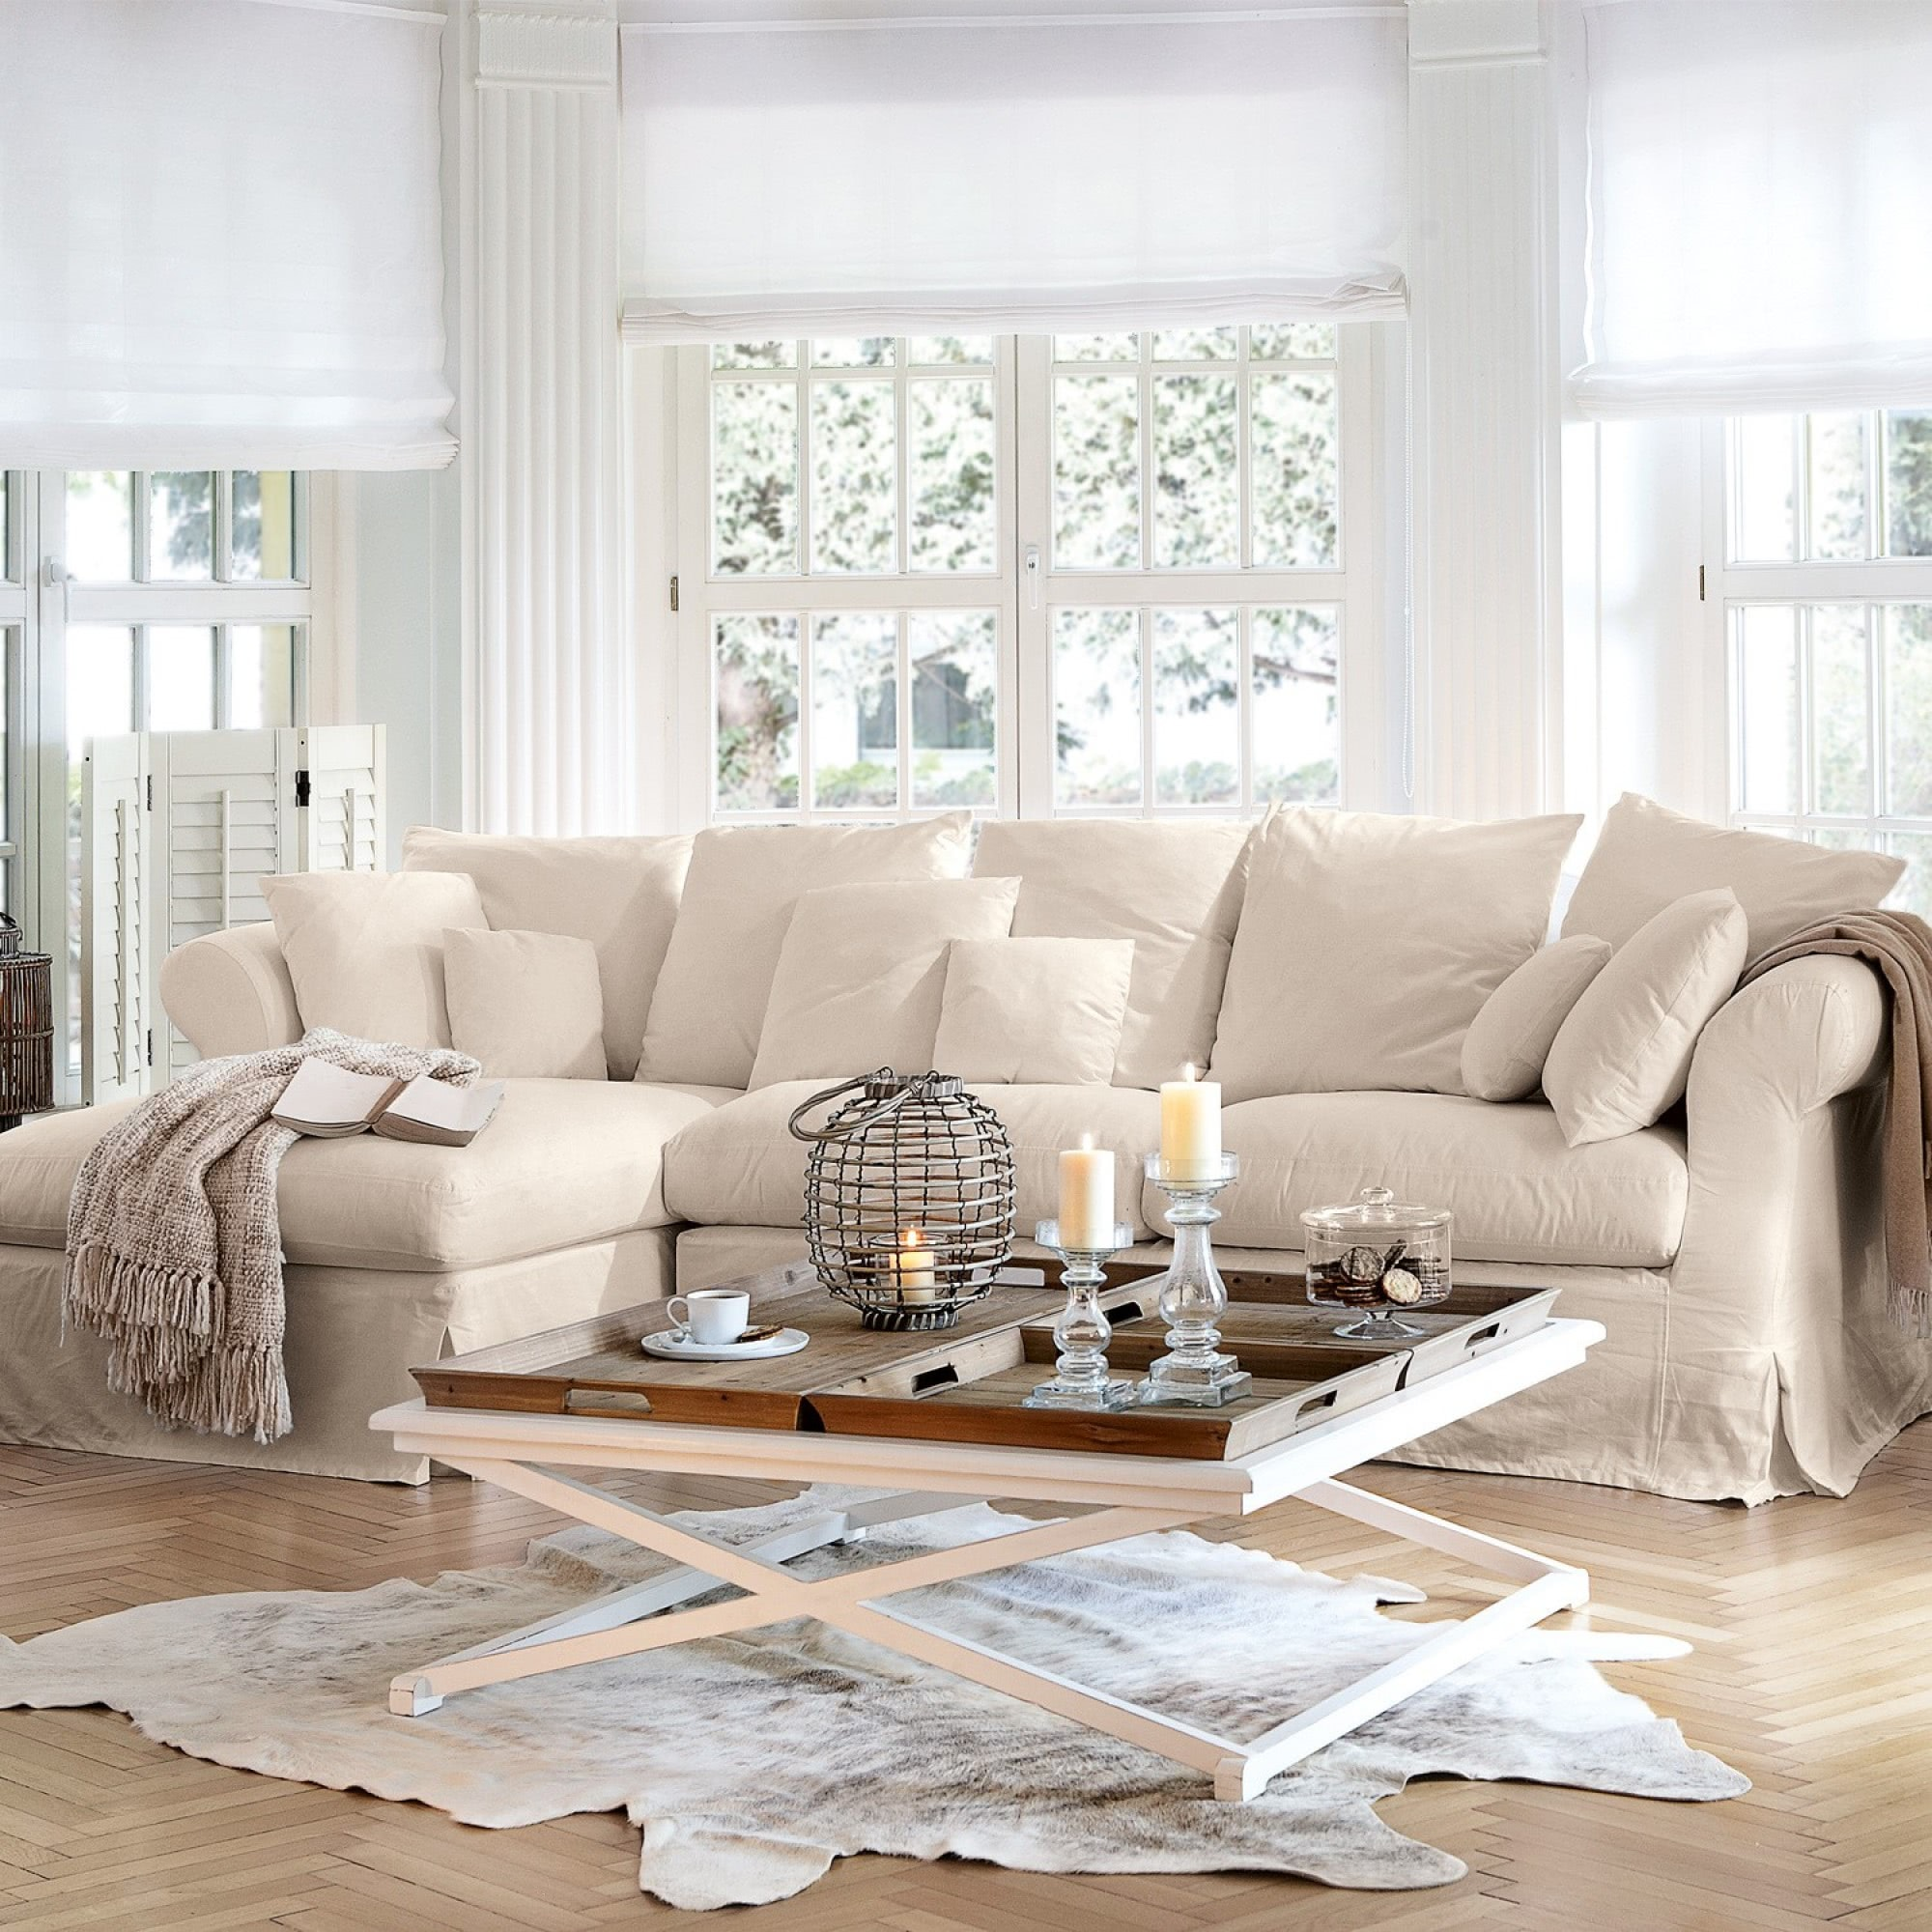 Sofa new haven beige loberon for Sofa landhausstil